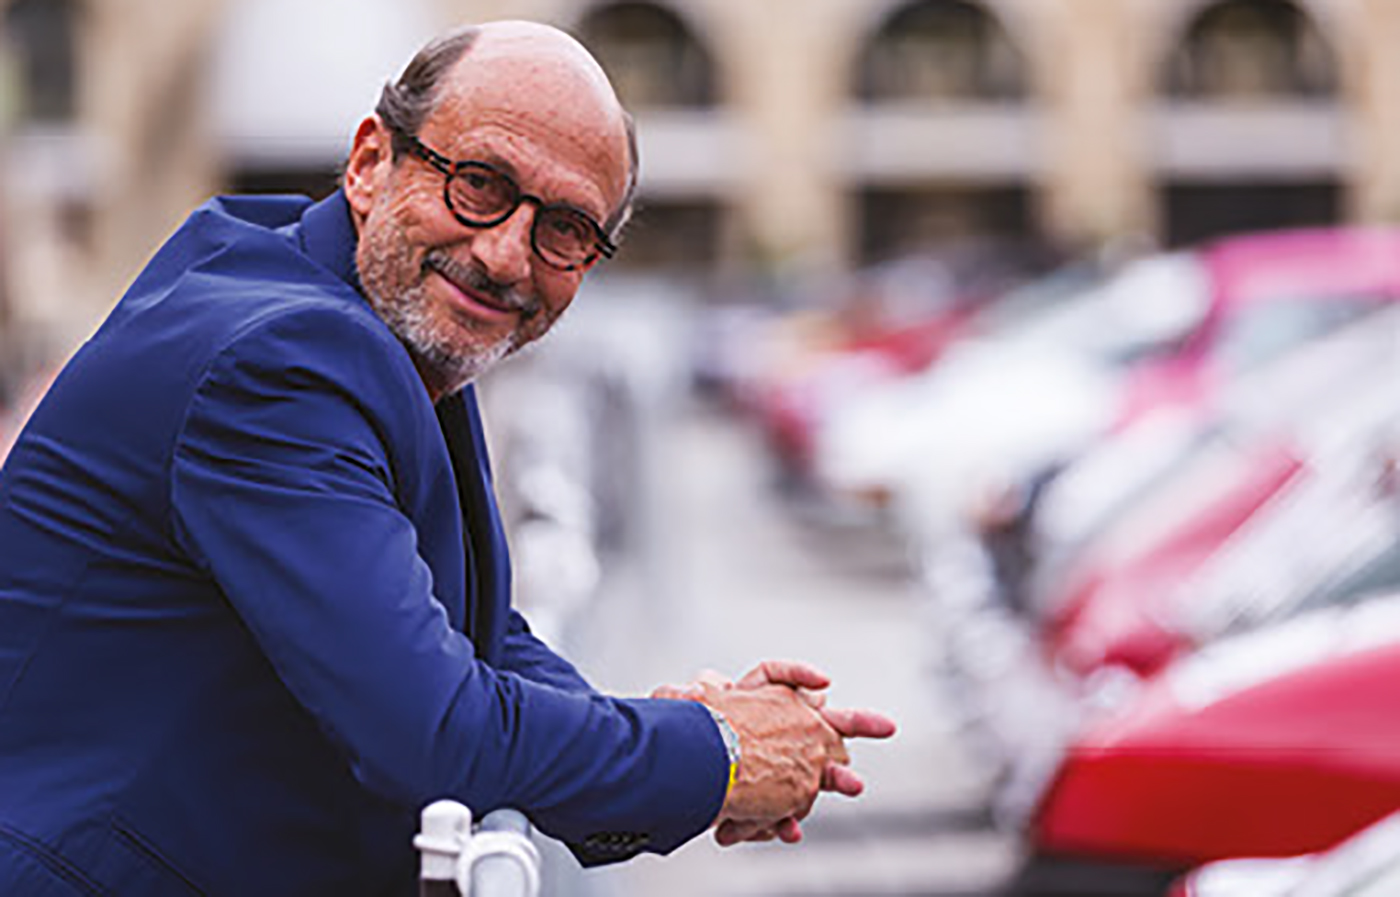 Keeping Time Glass Meets Richard Mille Founder Of The Eponymous Pioneering Watch Brand The Glass Magazine